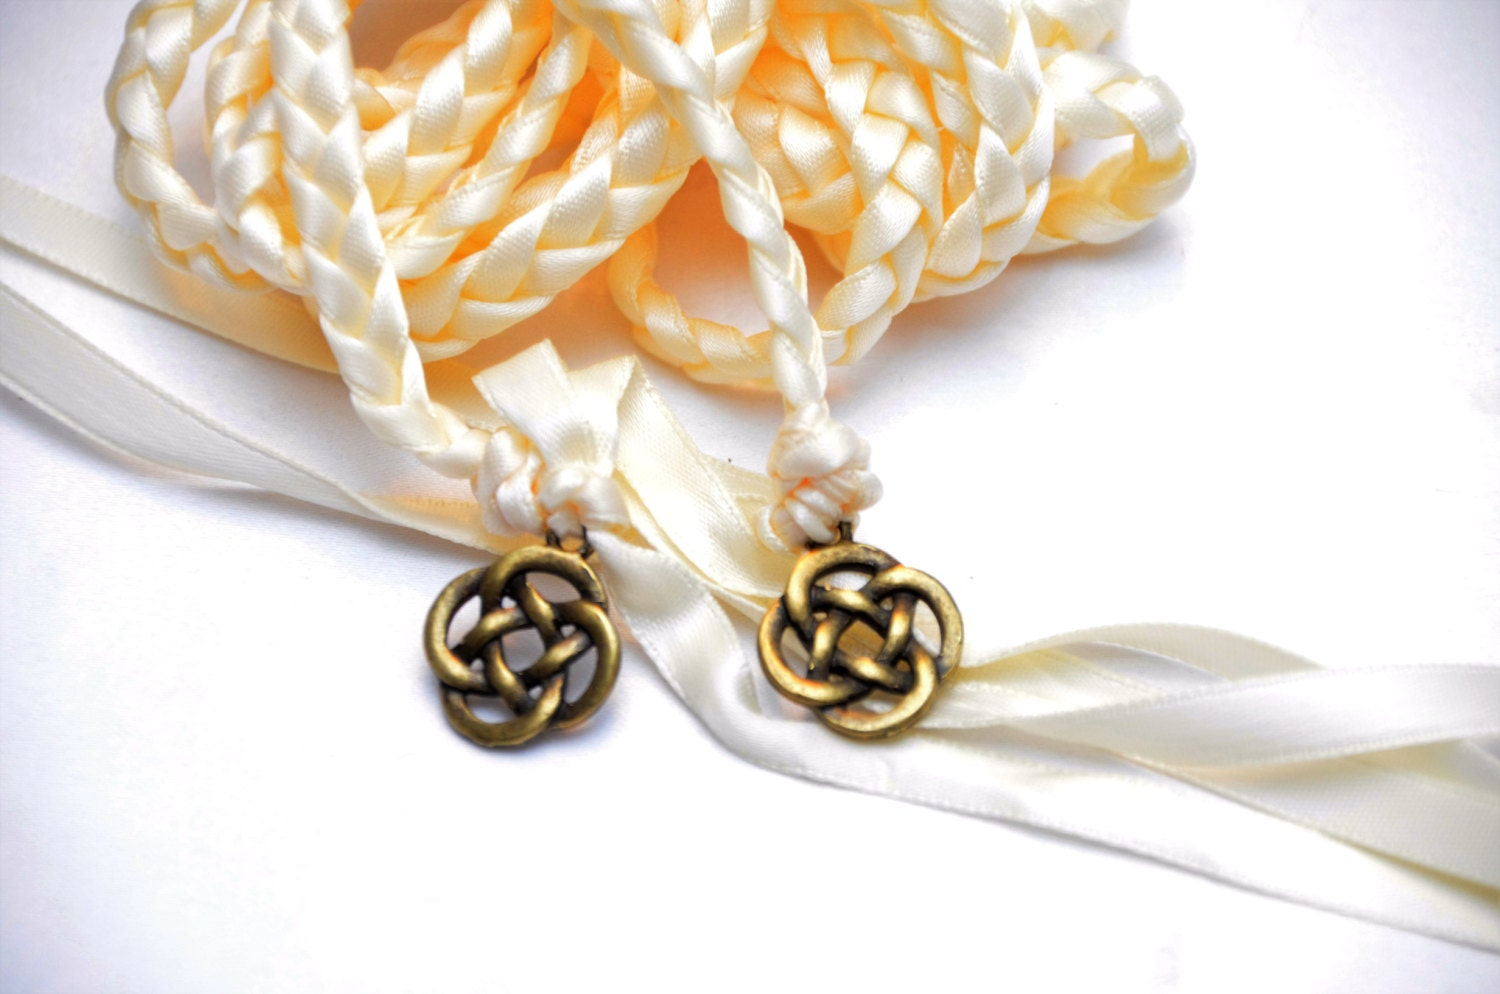 Celtic Knot Wedding Hand Fasting Binding Cord Choose Ribbon Color Amp Charm Wedding Ceremony